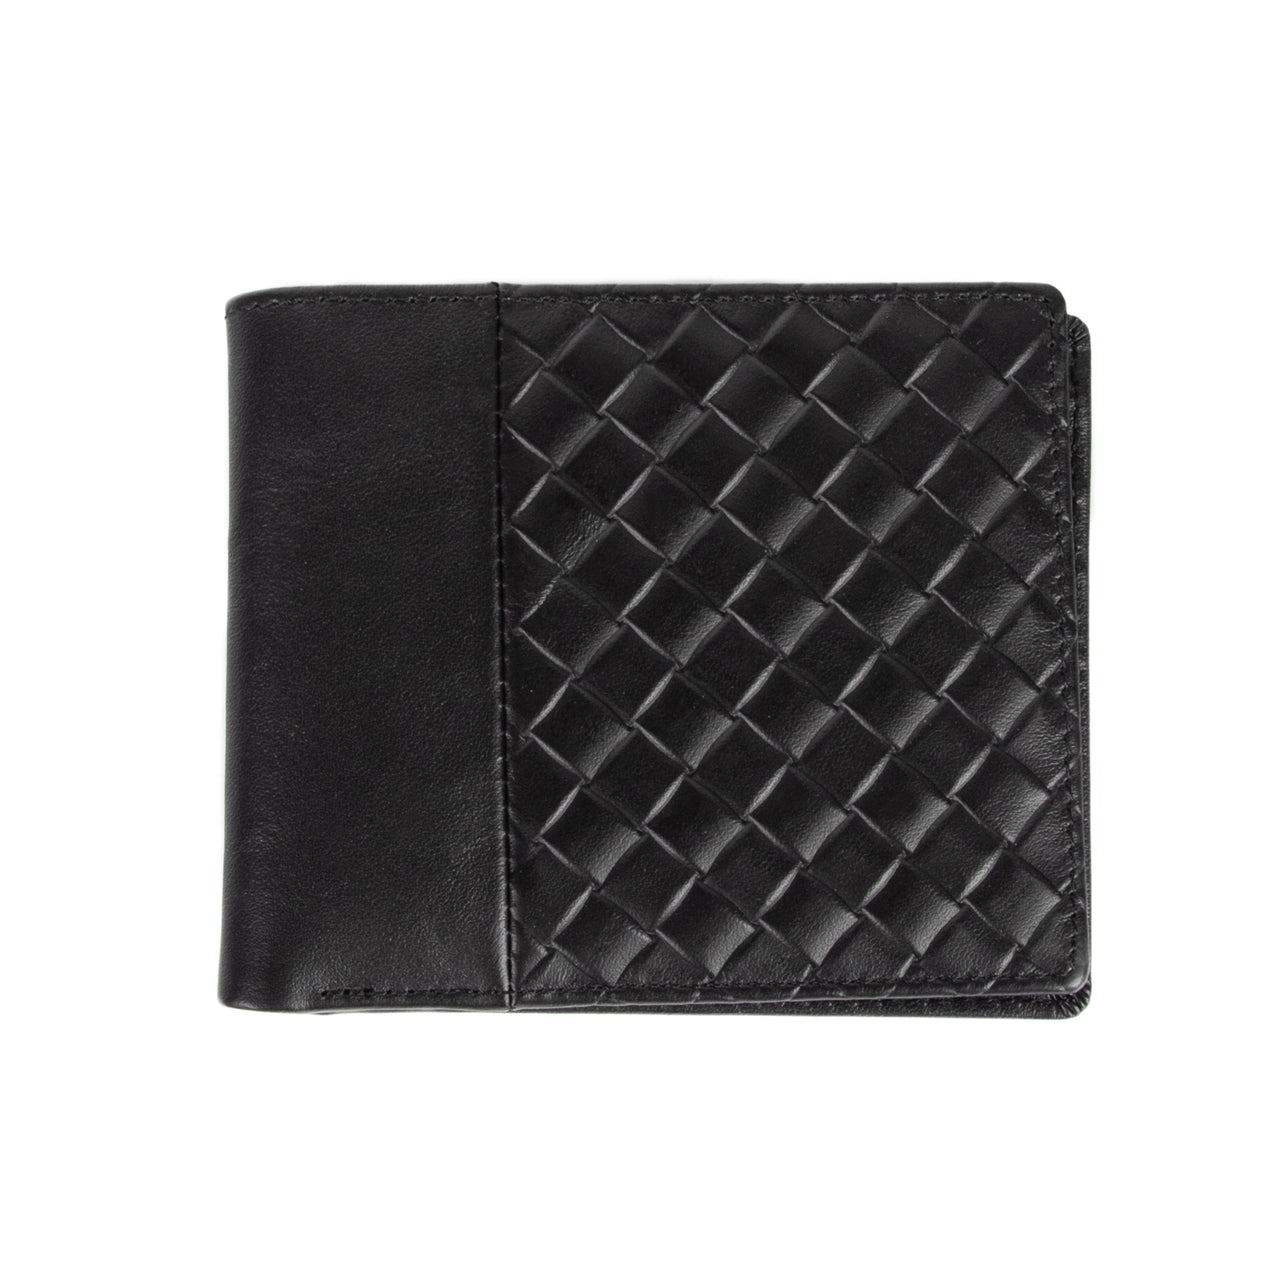 The Gianna Wallet